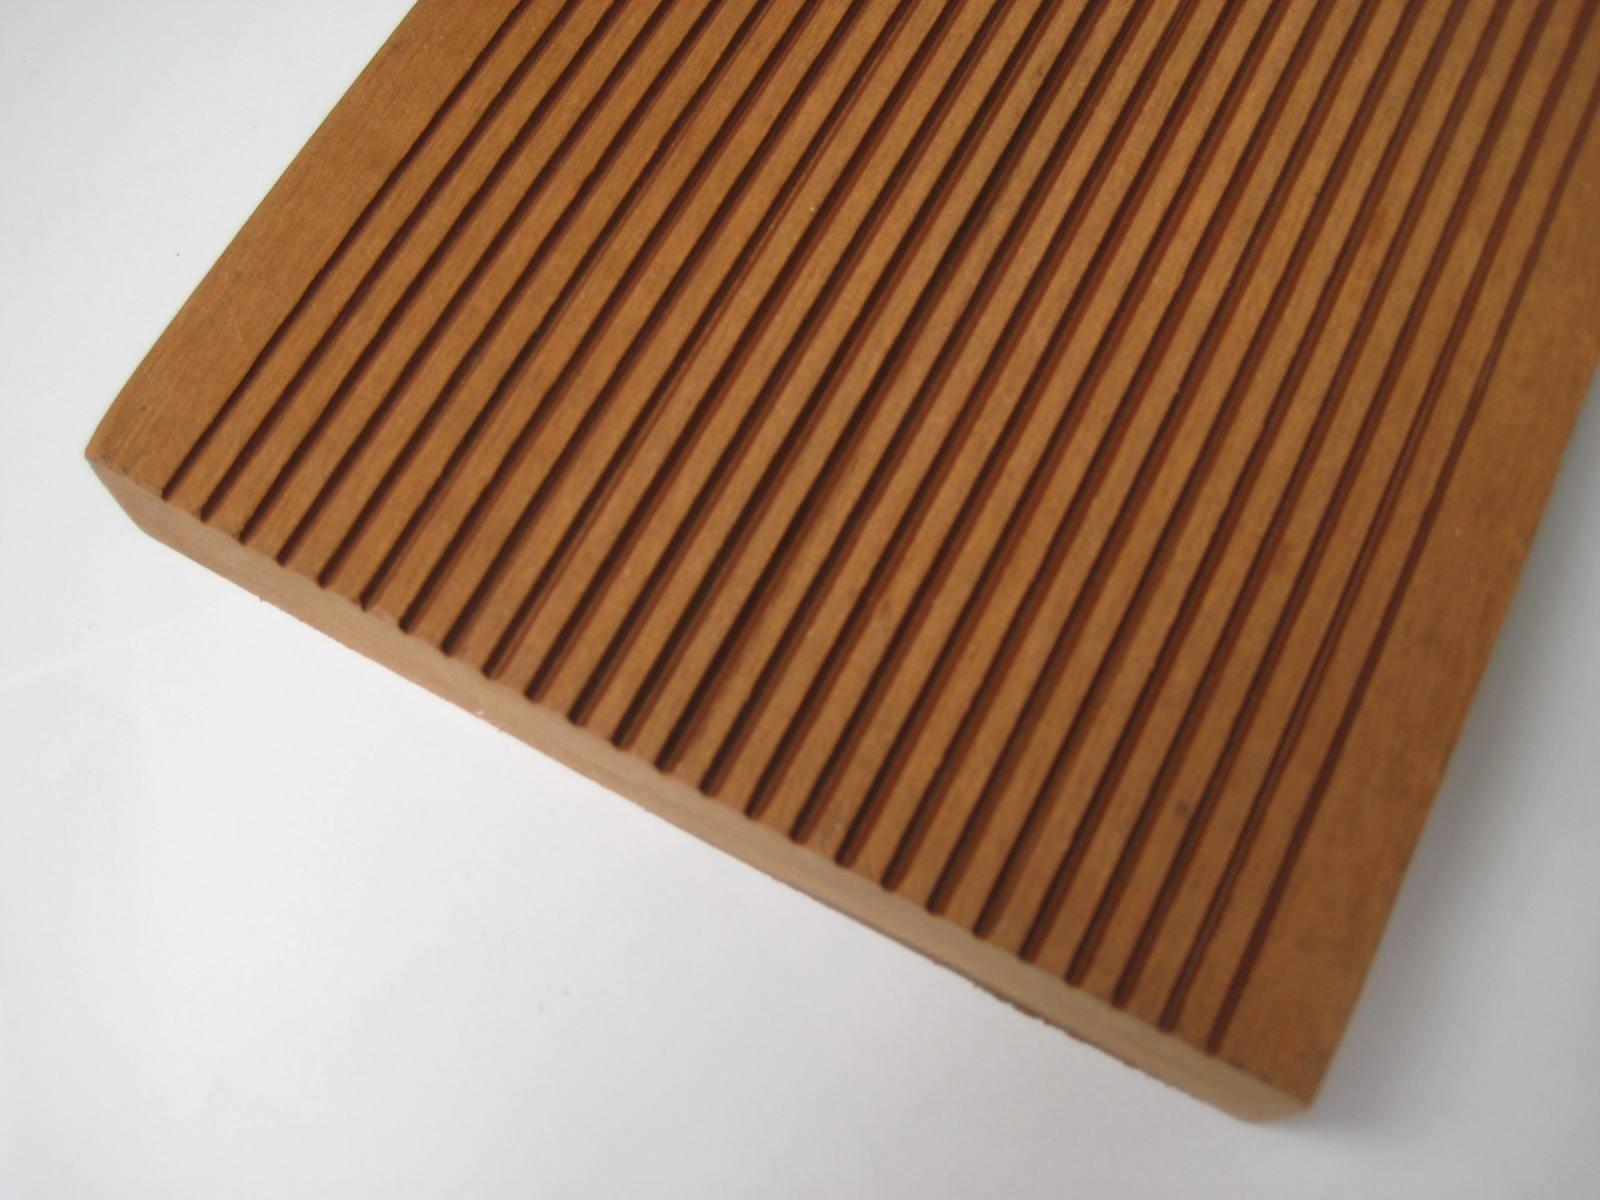 Plastic Wood Plastic Wooden Pallets Wood Plastic